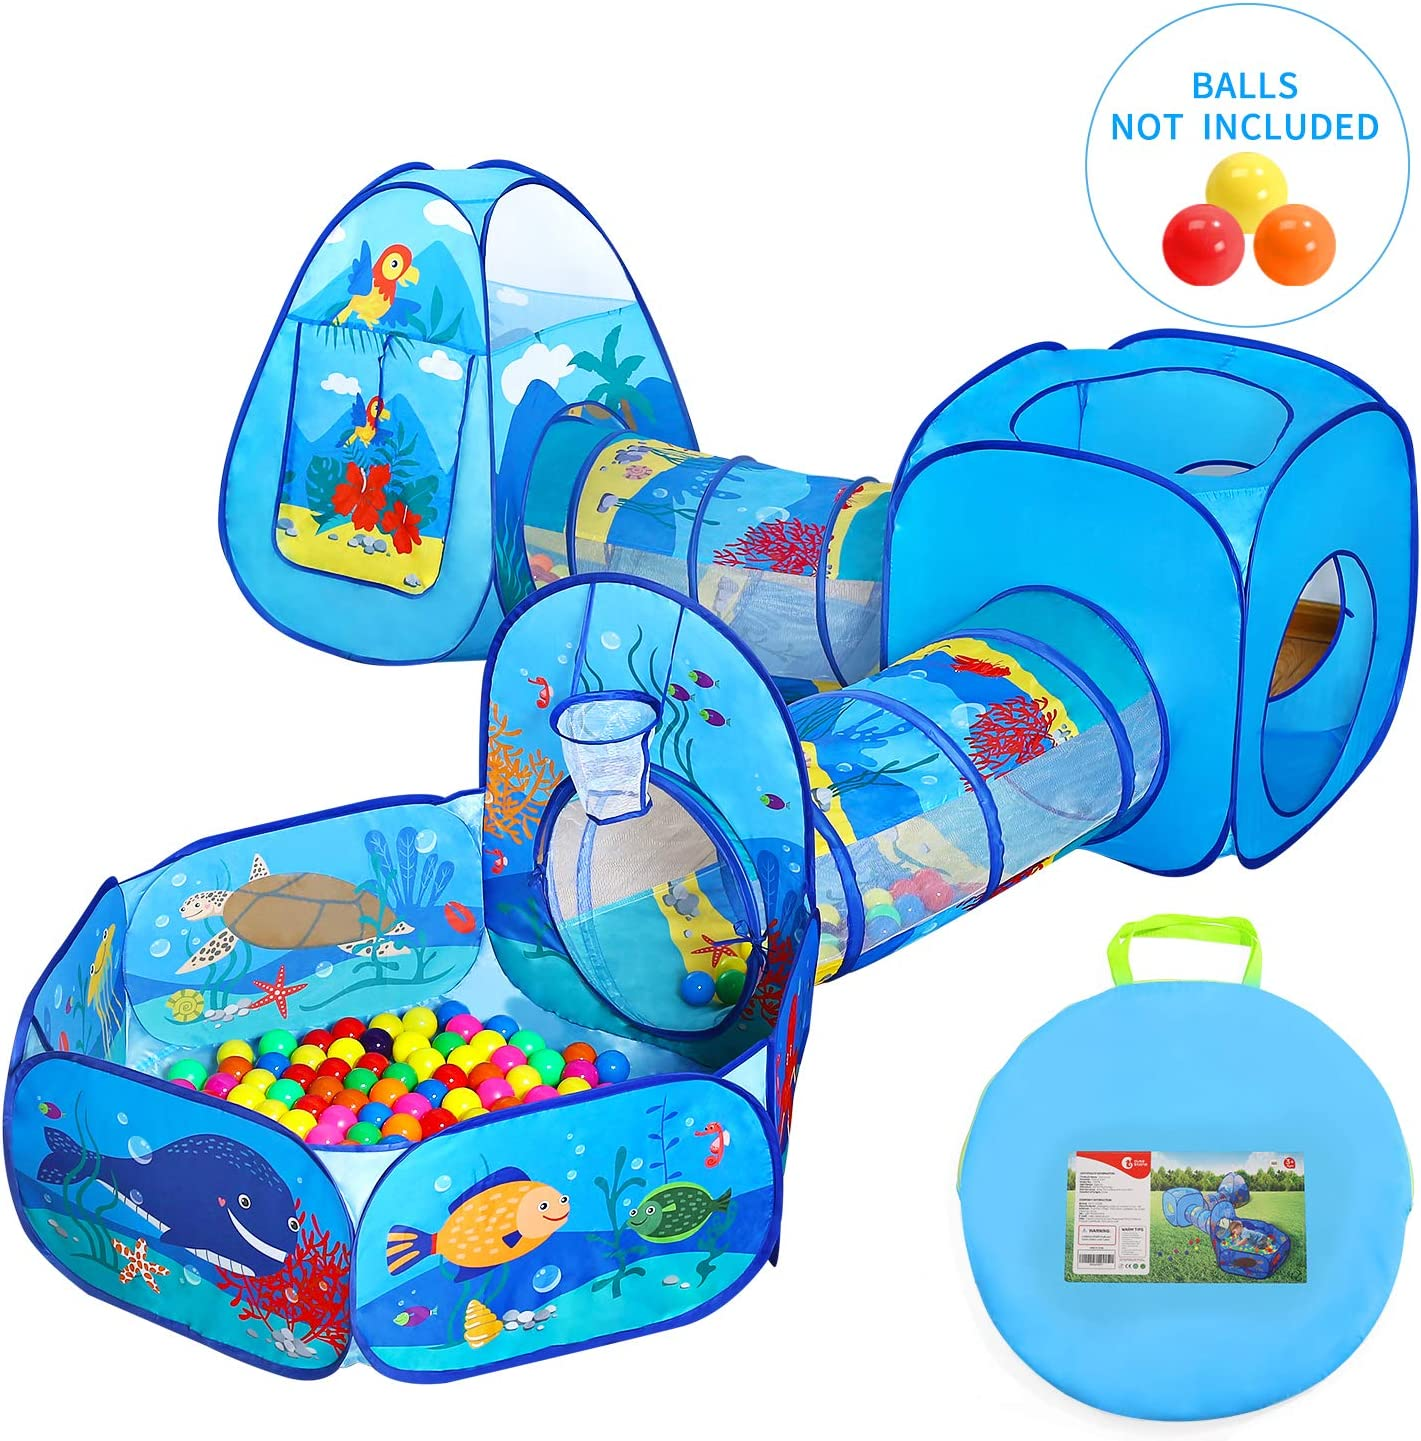 Kids Playhouse Playground and Backyard Playsets for Baby Boys and Girls CUTE STONE Ball Pit Play Tent and Tunnels for Toddlers Indoor and Outdoor Balls Not Included